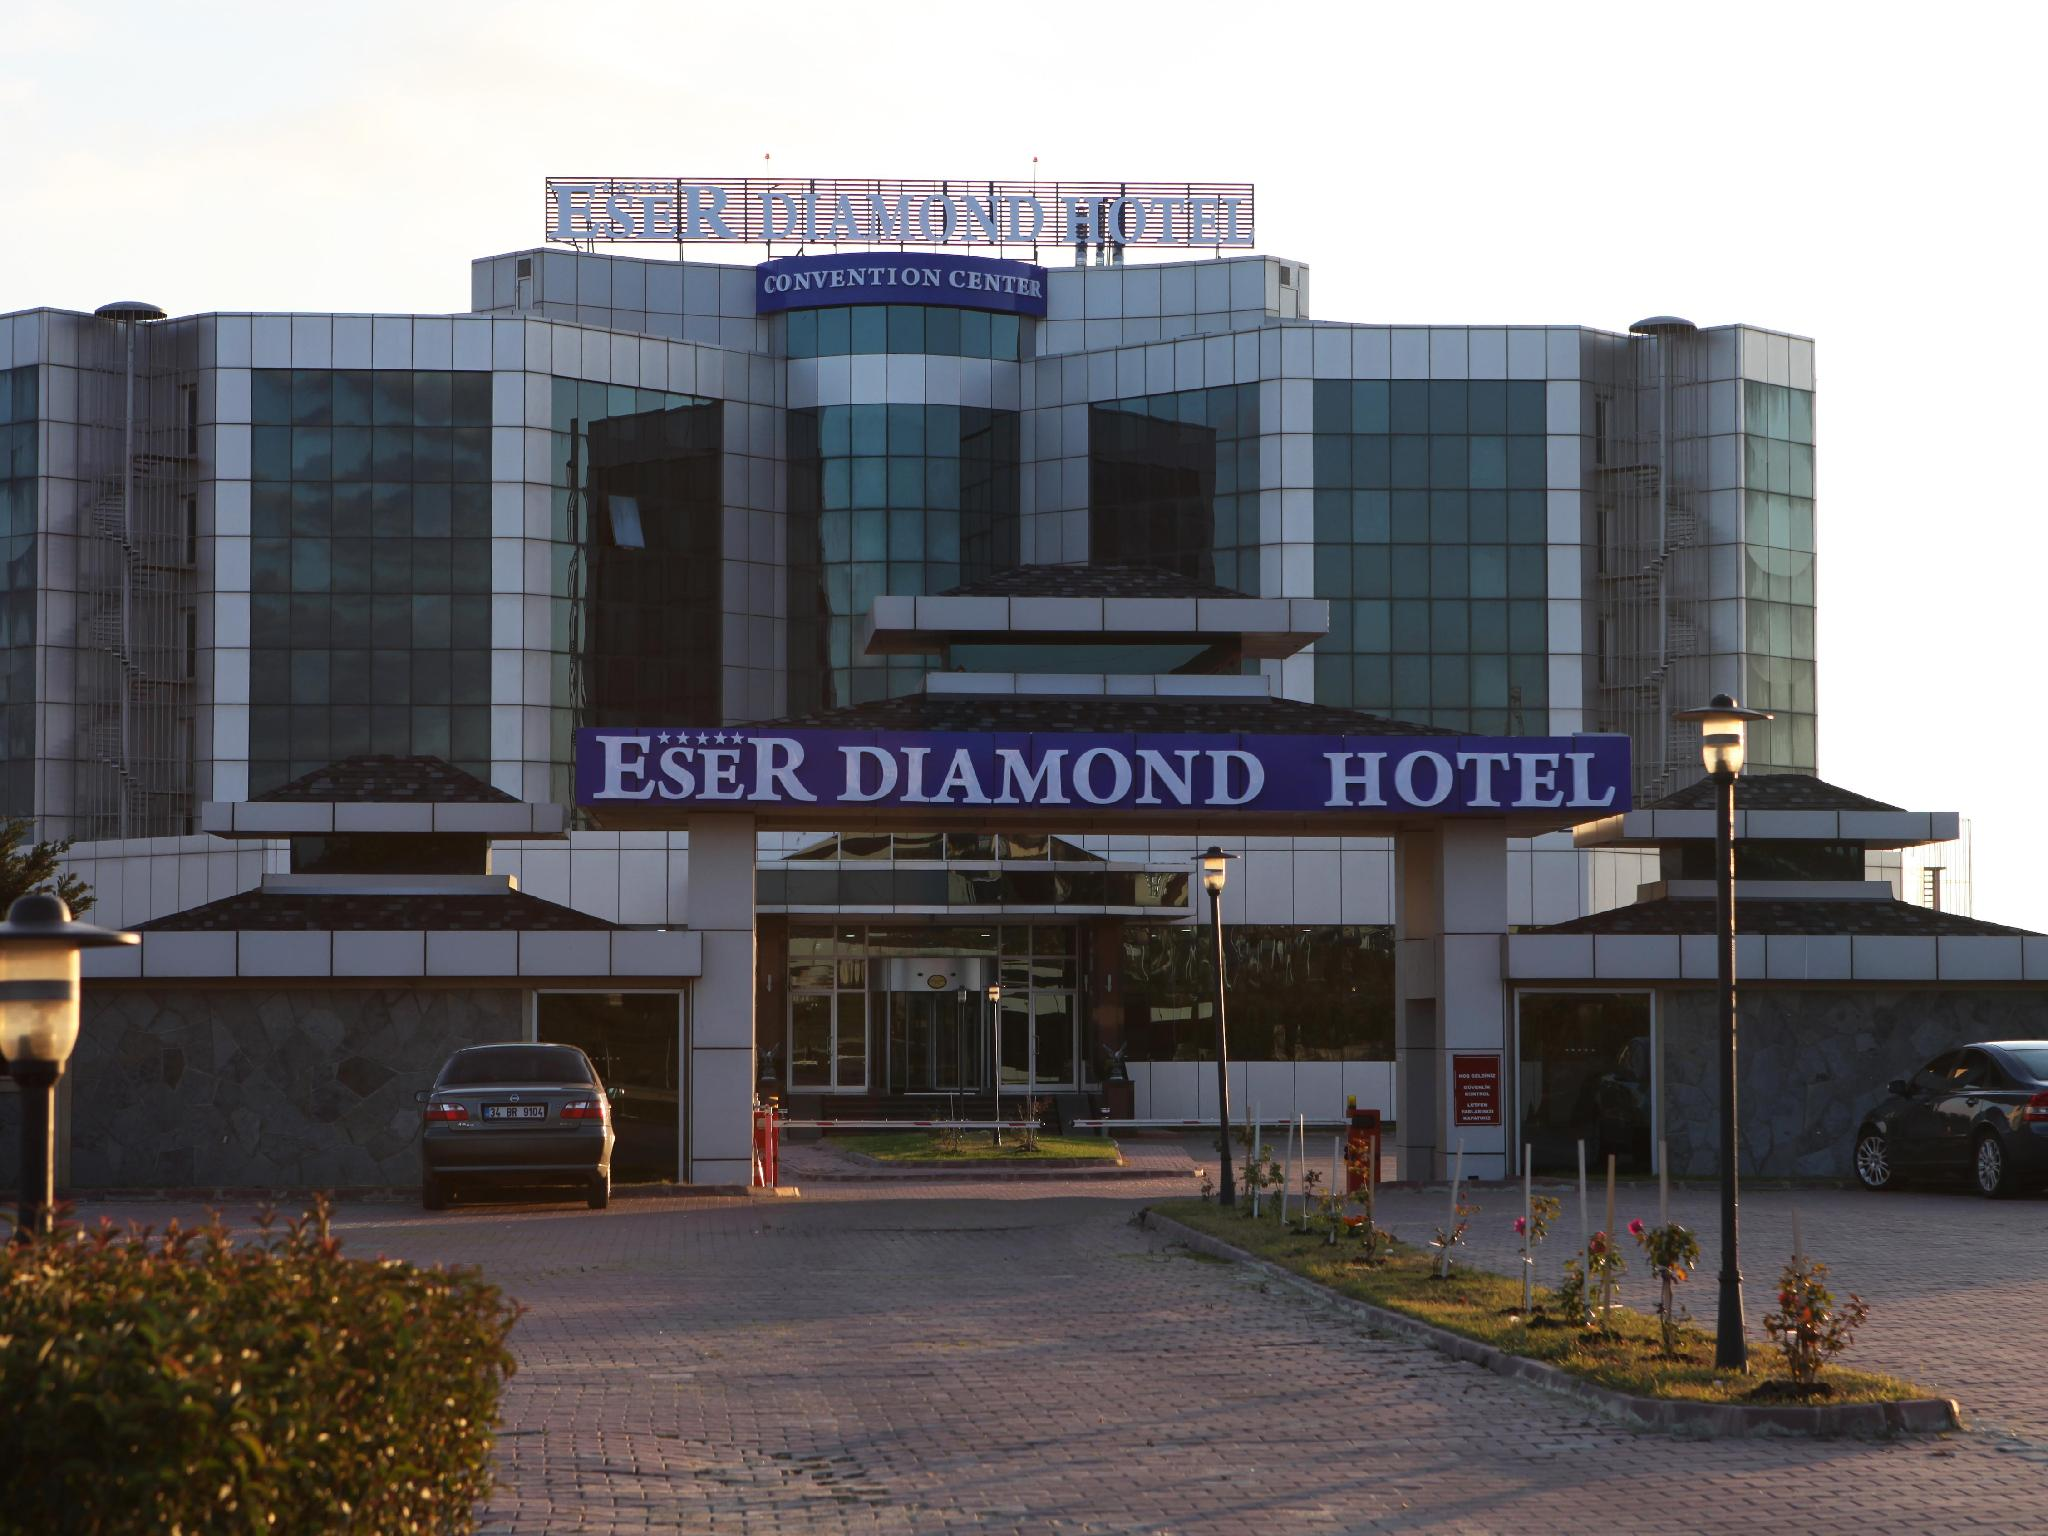 Eser Diamond Hotel And Convention Center